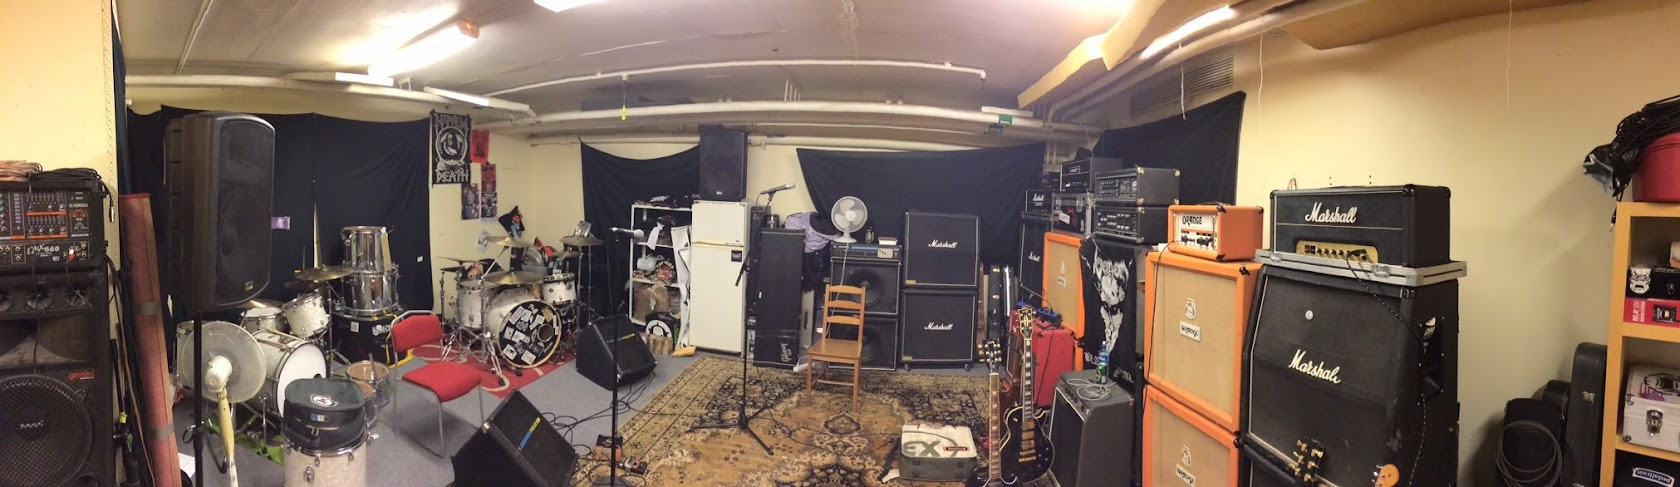 Show Your Man Cave : Show your jam space man cave guitar room page